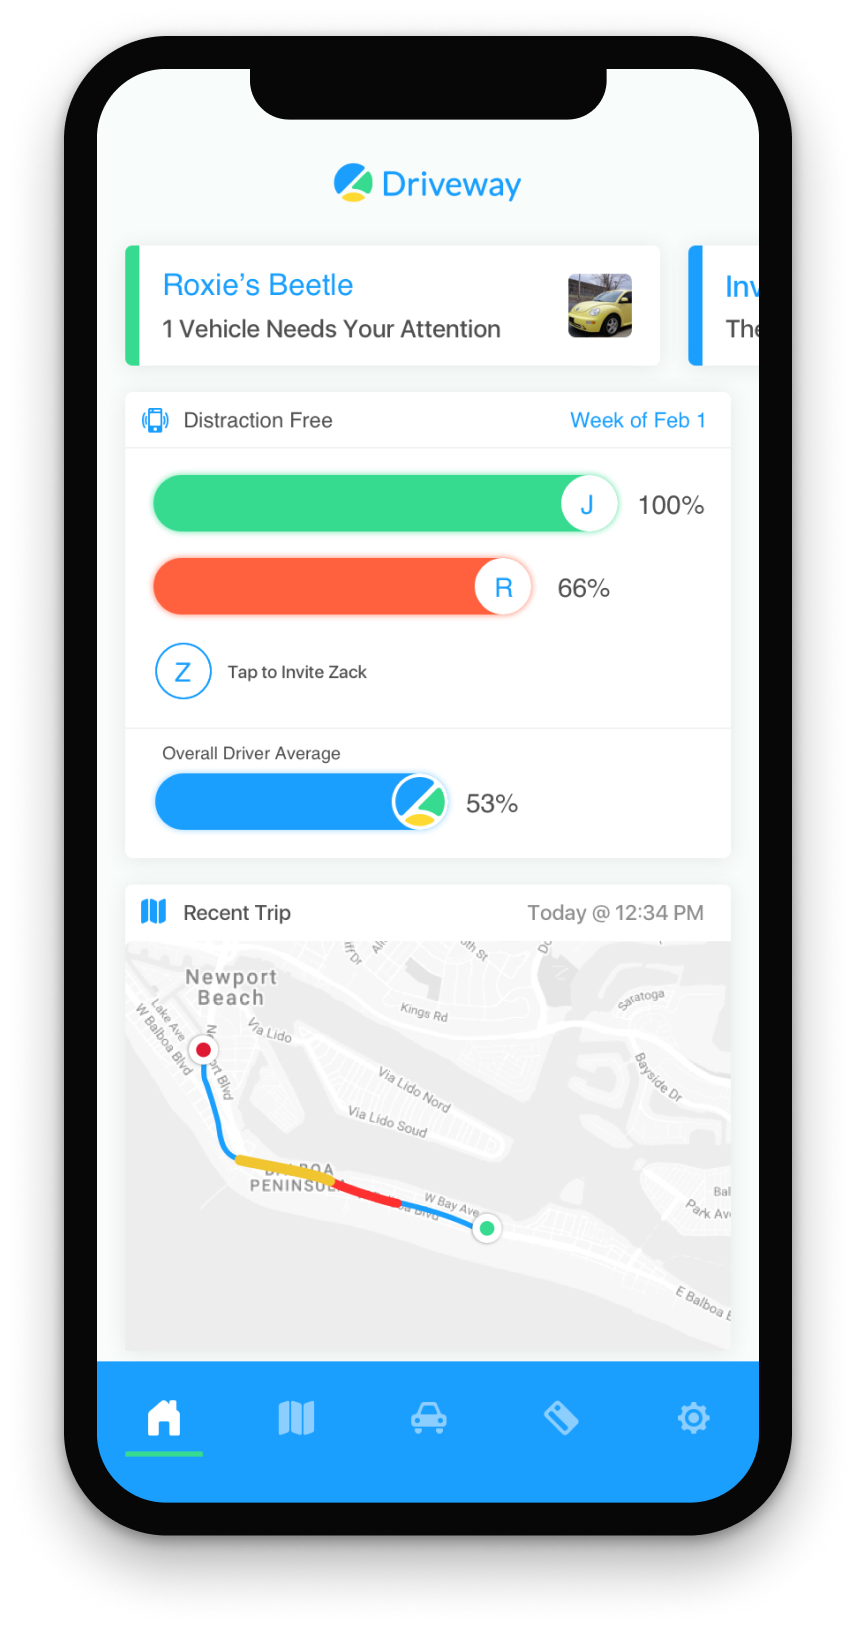 Driveway App UI for iOS